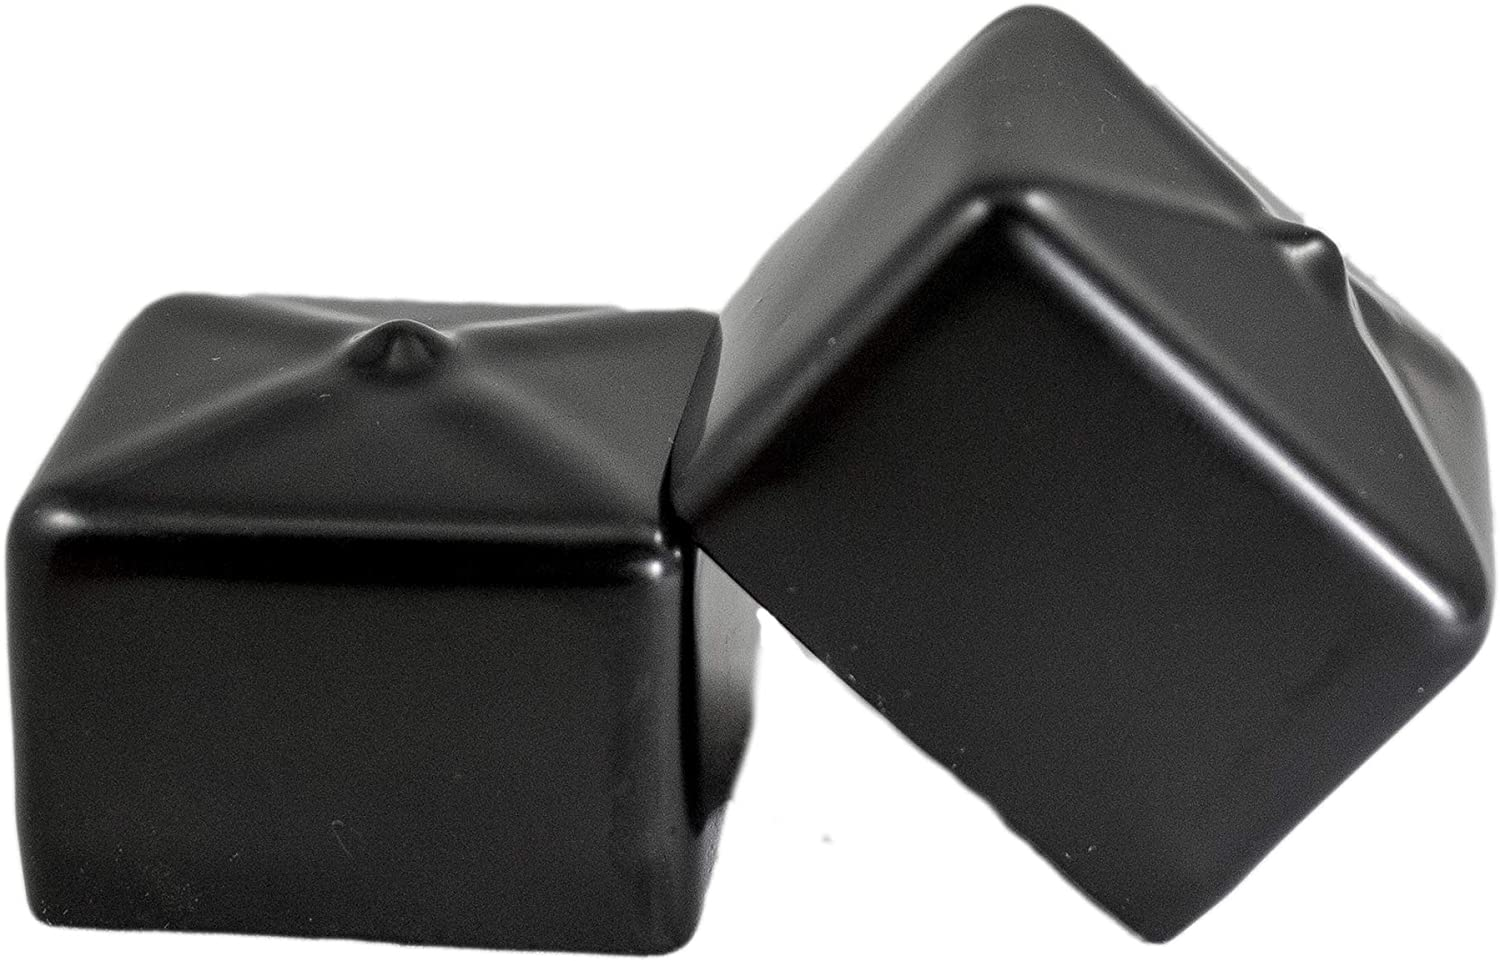 Amazon Com Prescott Plastics 1 1 2 Inch Square Black Vinyl End Cap Flexible Pipe Post Rubber Cover A Pack Of 4 Caps Kitchen Dining